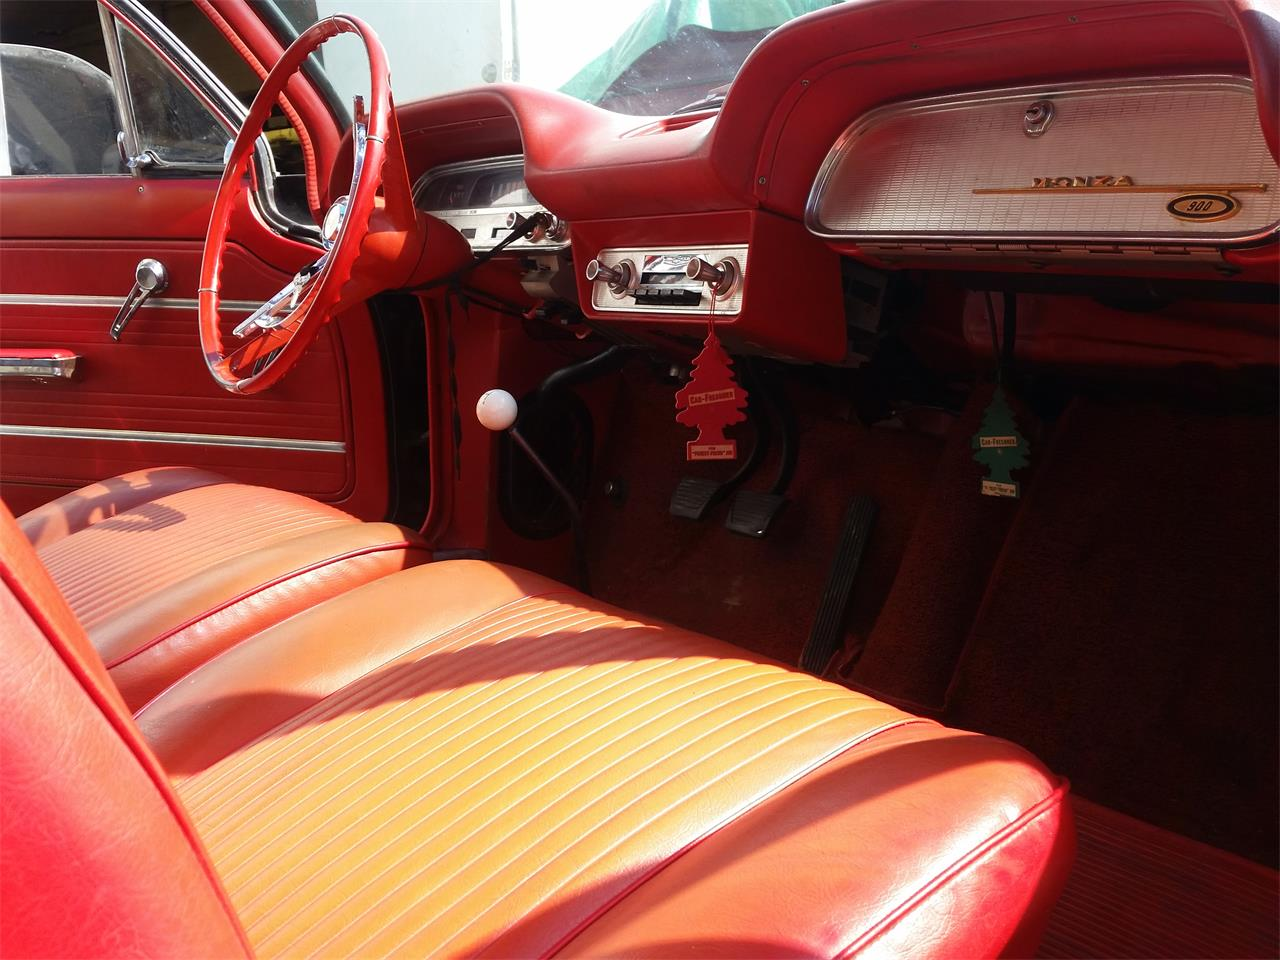 1961 Chevrolet Corvair Monza (CC-1190795) for sale in Carnation, Washington